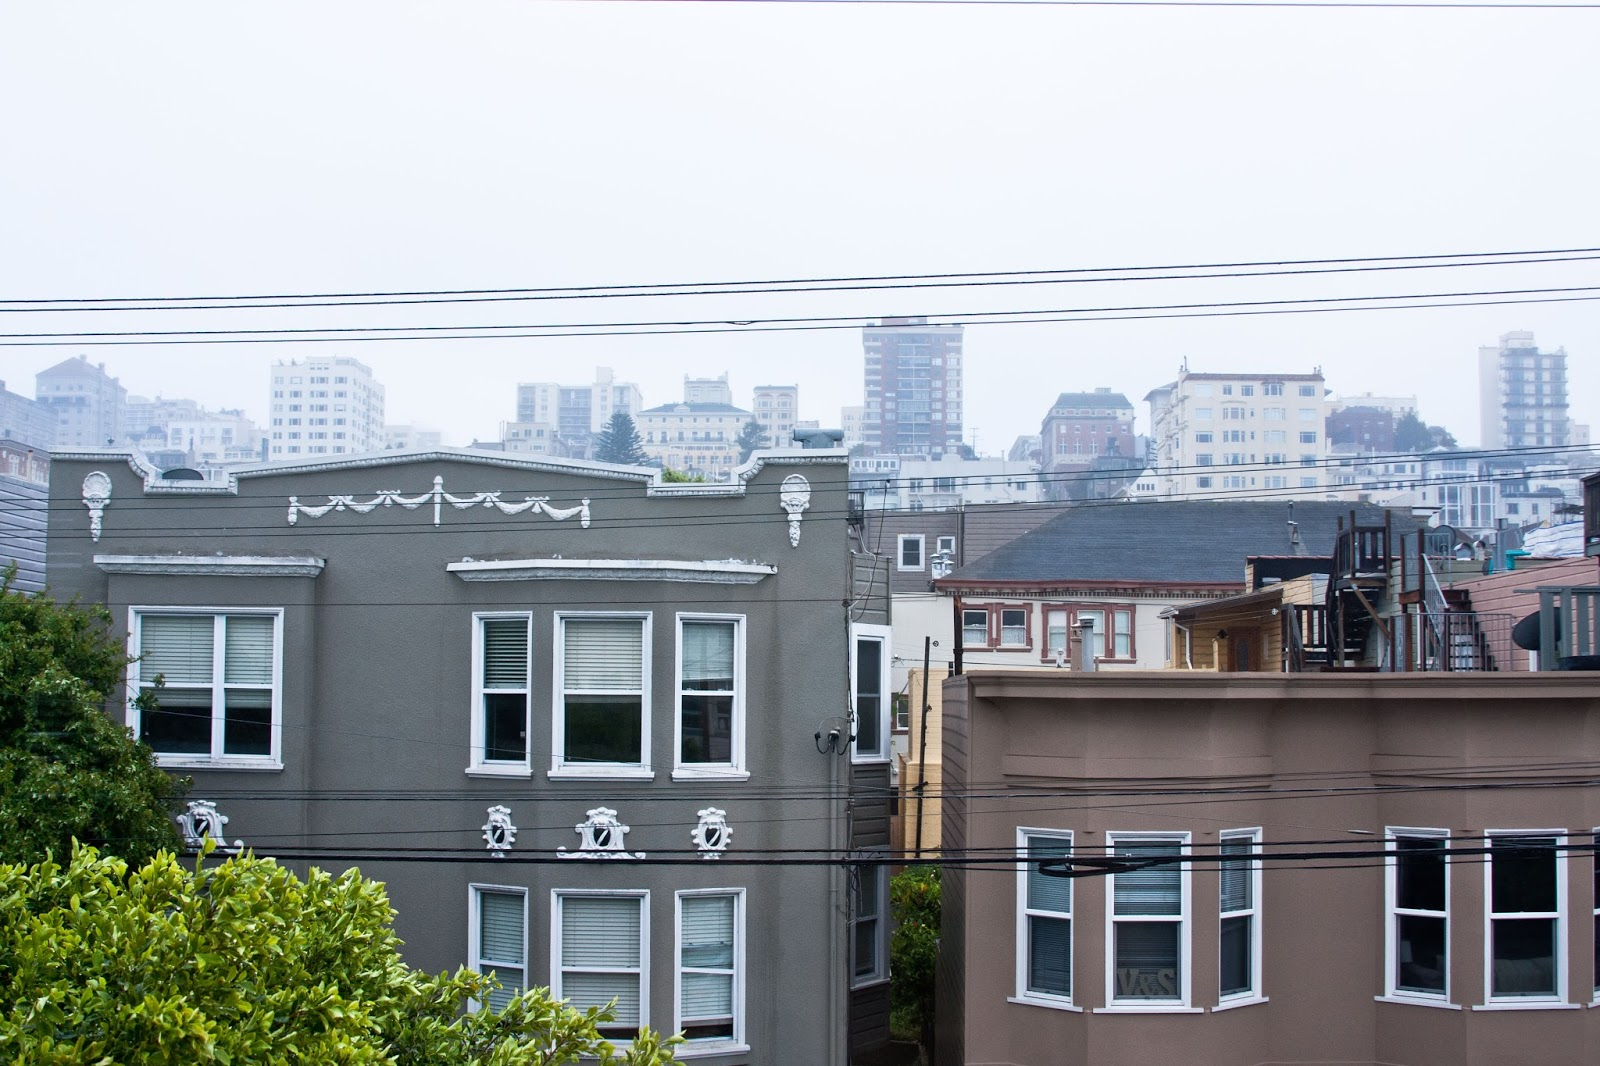 The view from our Cow Hollow home.